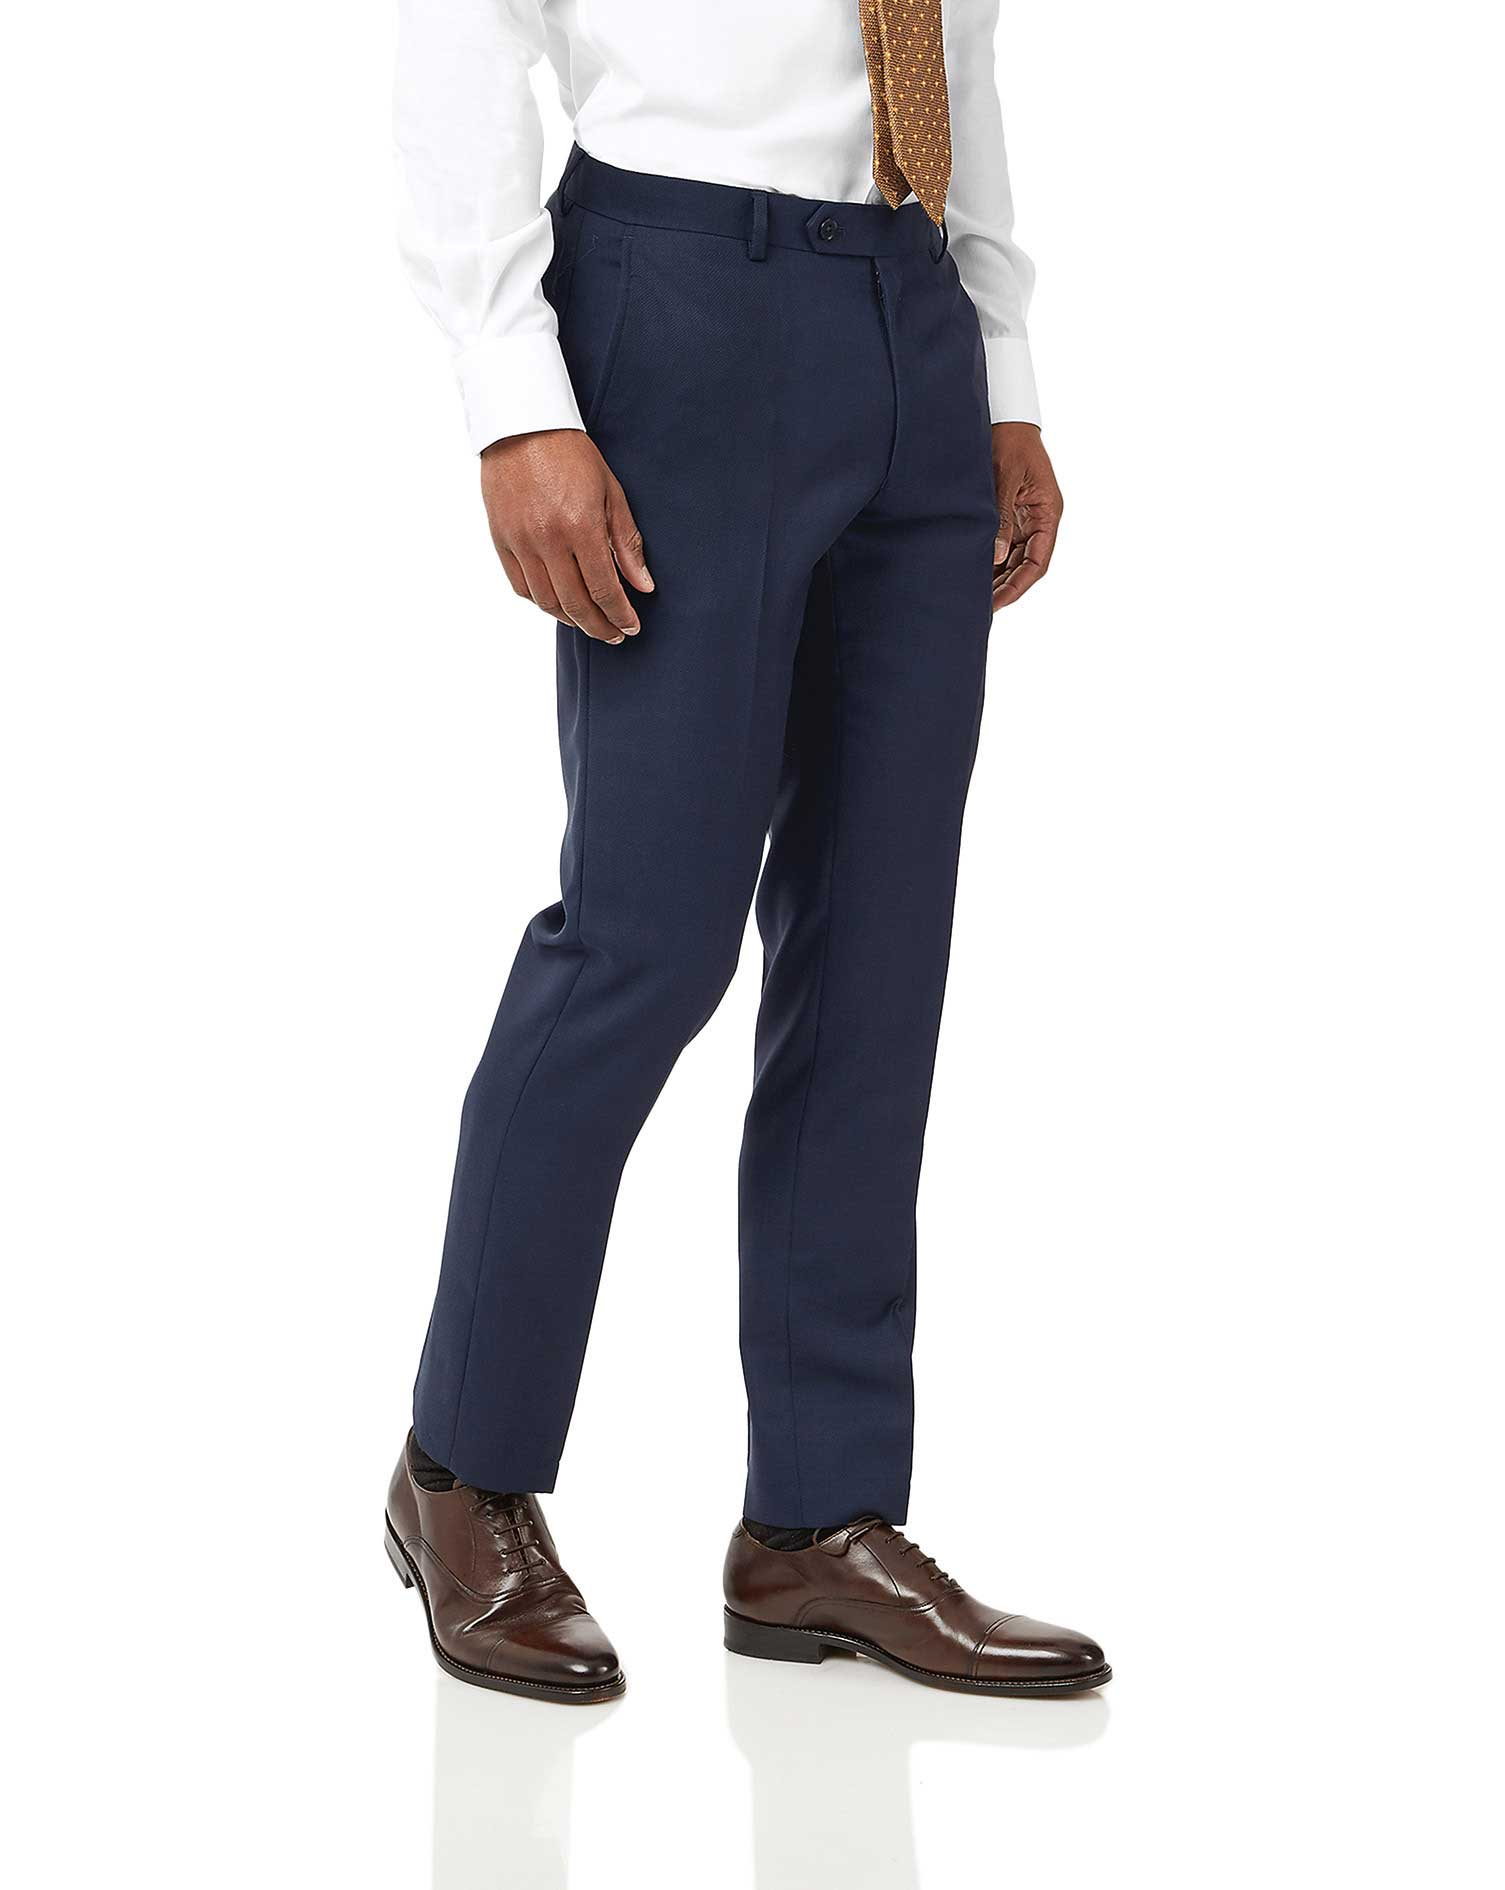 Navy Slim Fit Birdseye Travel Suit Trousers Size W38 L34 by Charles Tyrwhitt